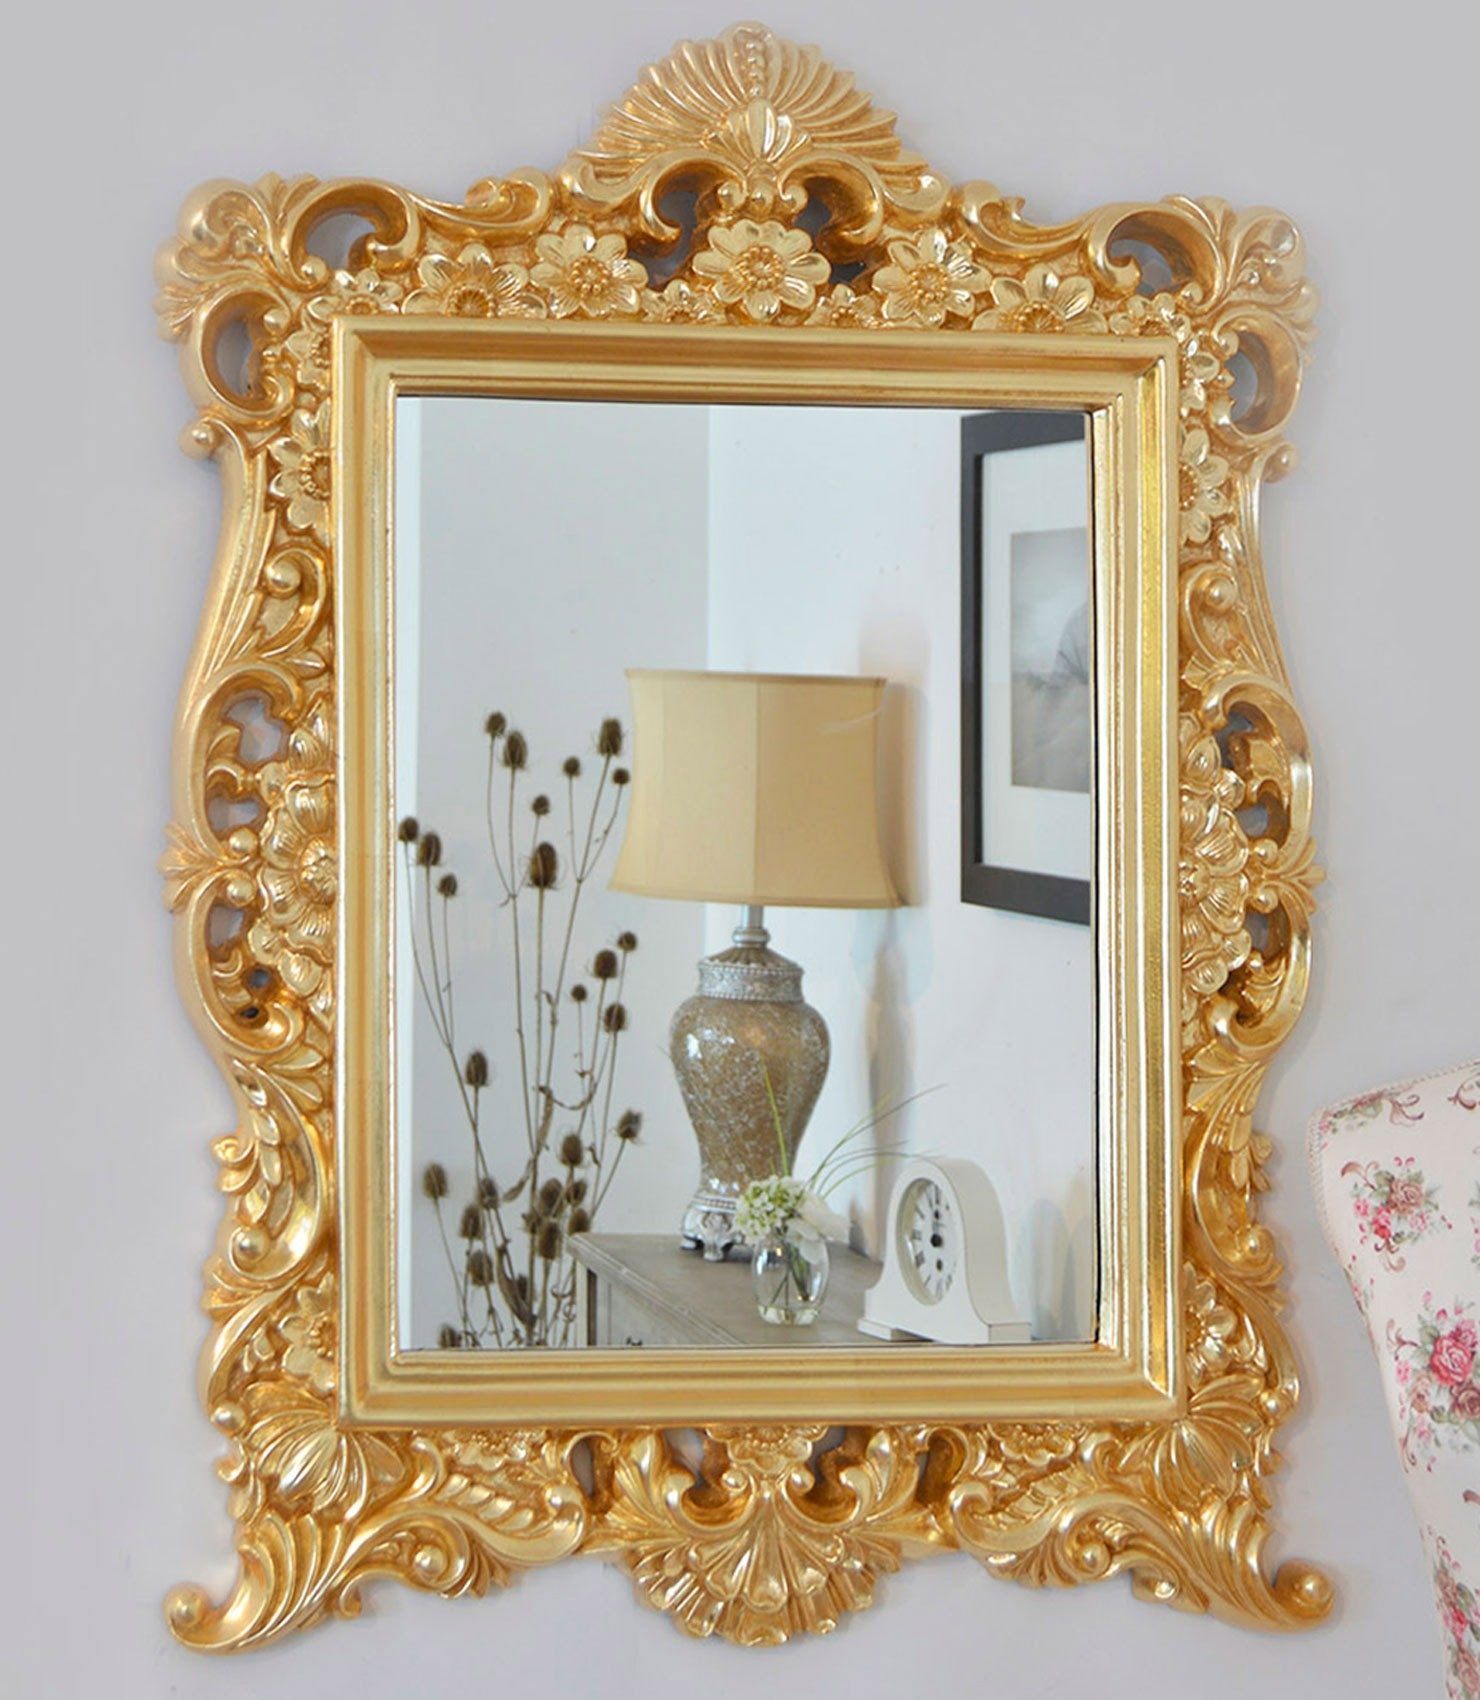 Large Gold Baroque Style Portrait Ornate Wall Mirror 2ft9 X 2ft1 In Gold Ornate Mirror (Image 5 of 15)